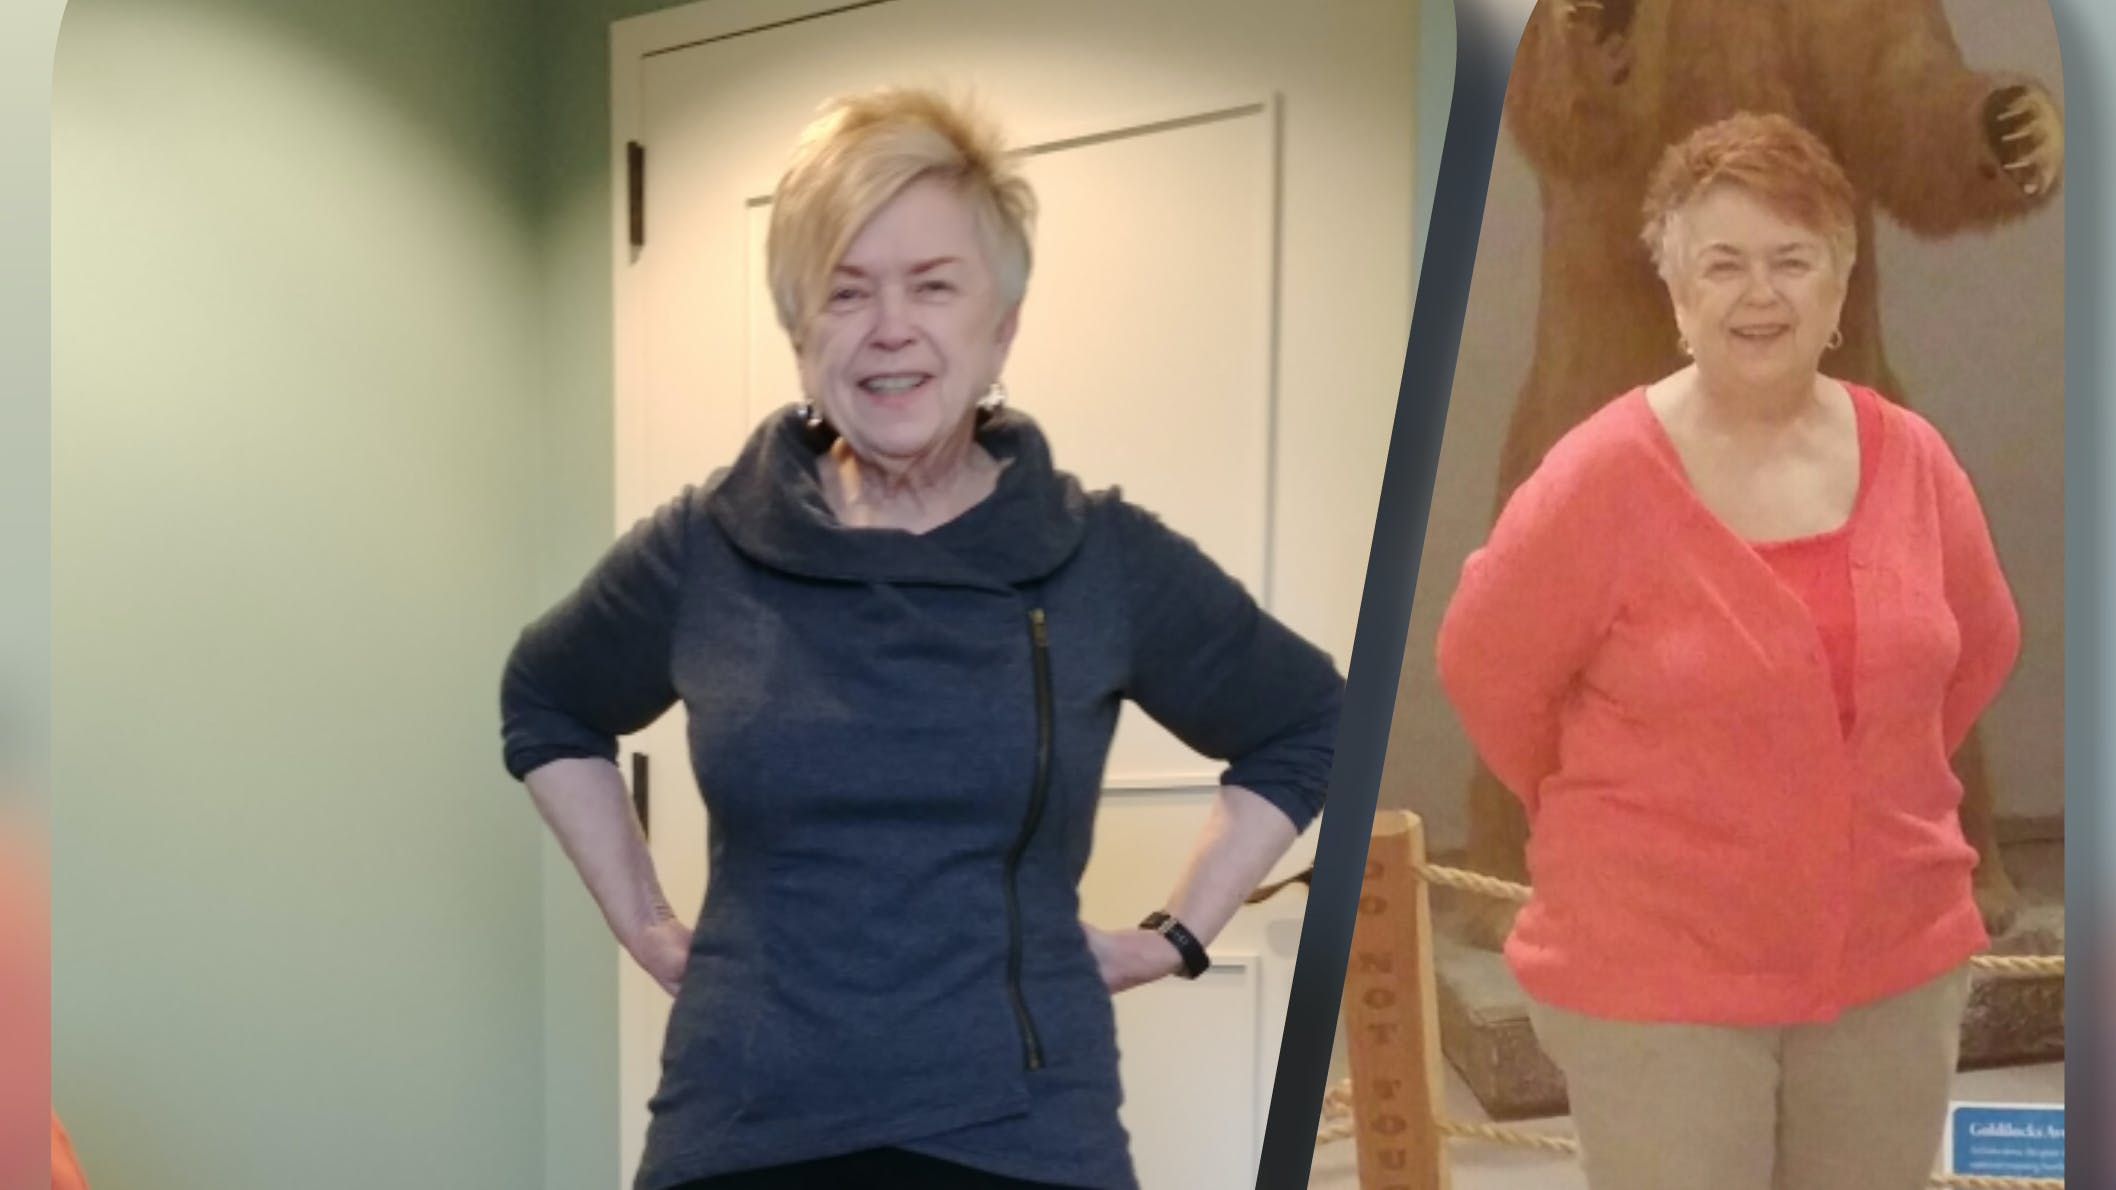 """After one year of low carb: """"I am 70 years old today and have never felt better"""""""